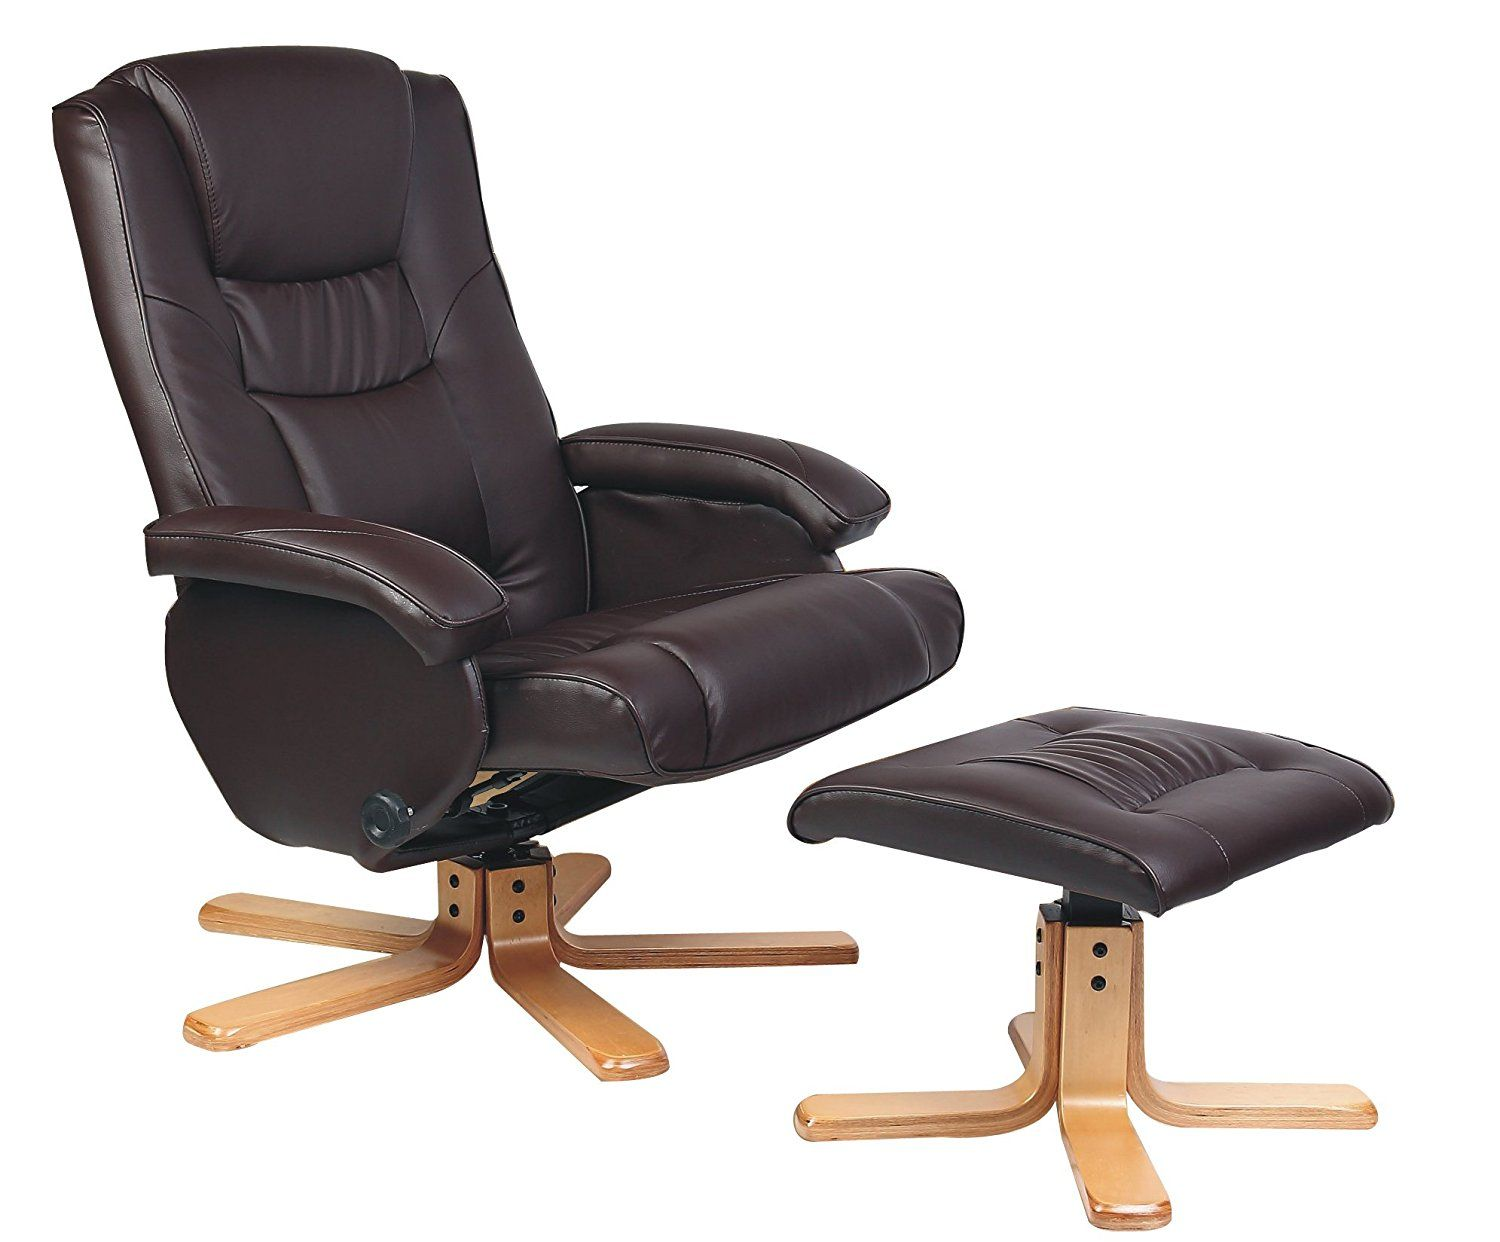 Birlea Nevada Faux Leather Swivel Chair With Footstool Brown Amazon Co Uk Kitchen Home Chair Swivel Chair Leather Swivel Chair